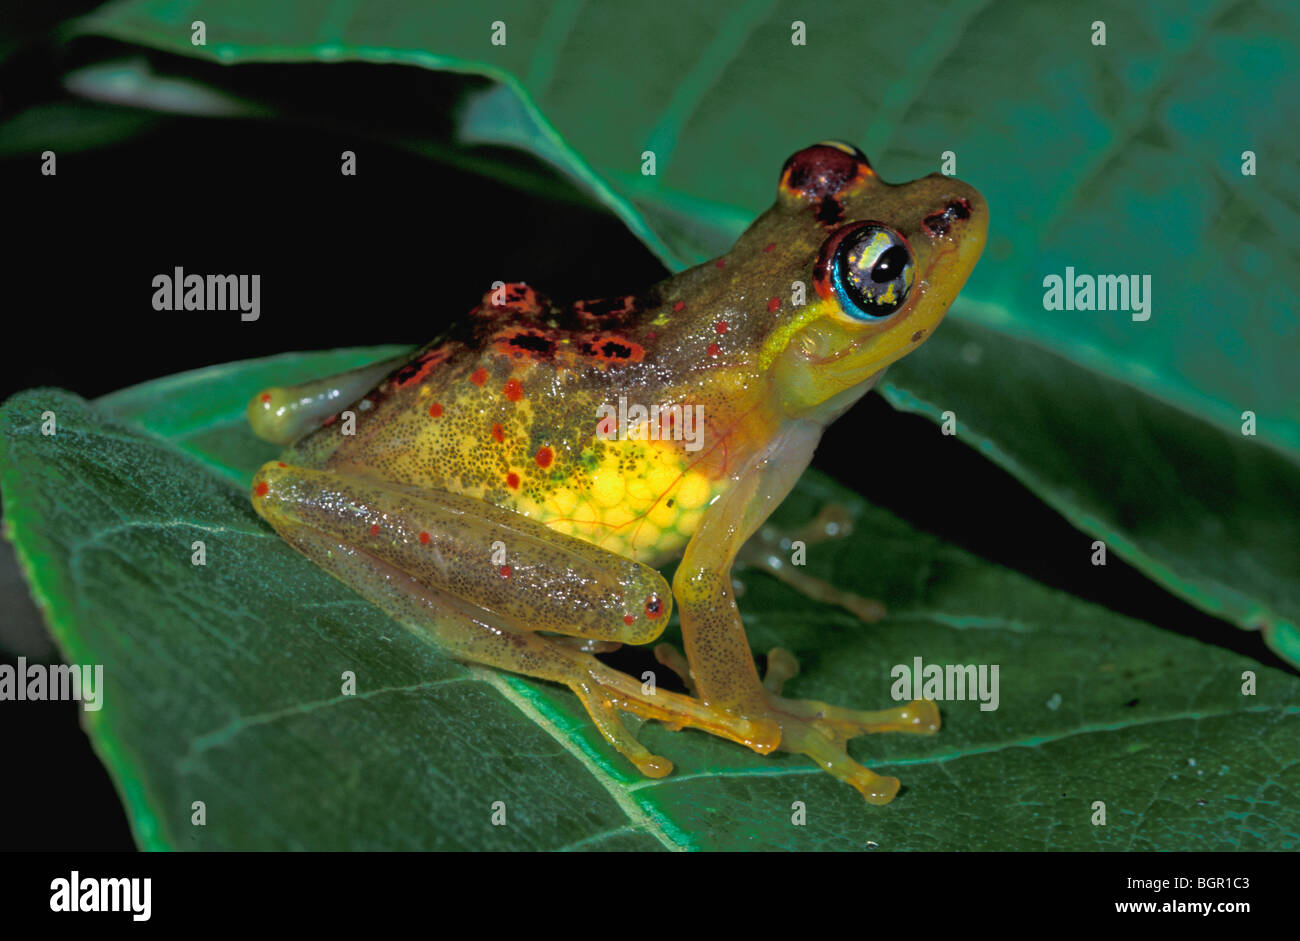 Red-backed Bright-eyed Frog (Boophis bottae), female with eggs in body, Andasibe-Mantadia National Park, Madagascar - Stock Image